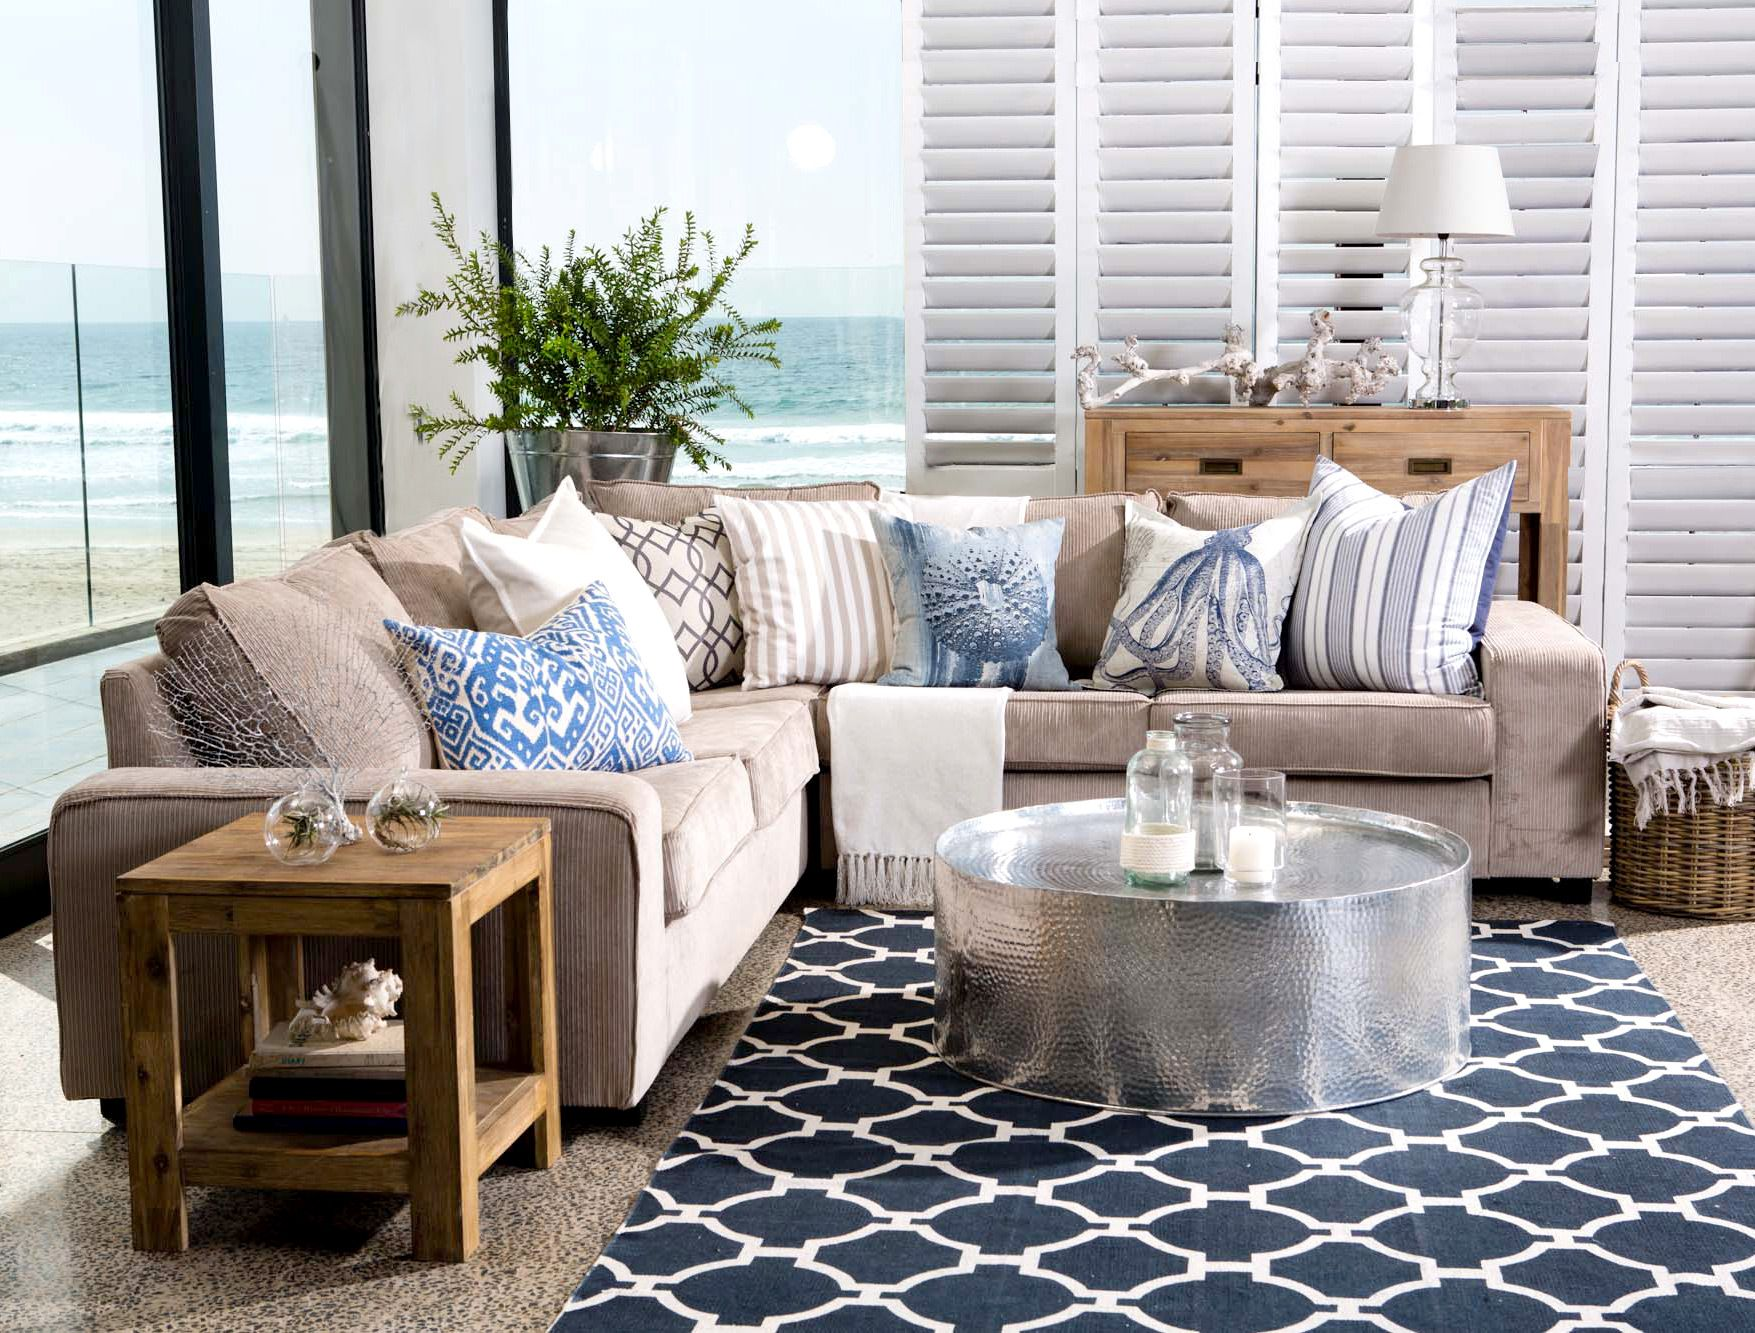 Beach House Envy Mr Price Home Mr Price Home African Home Decor Home Decor Online